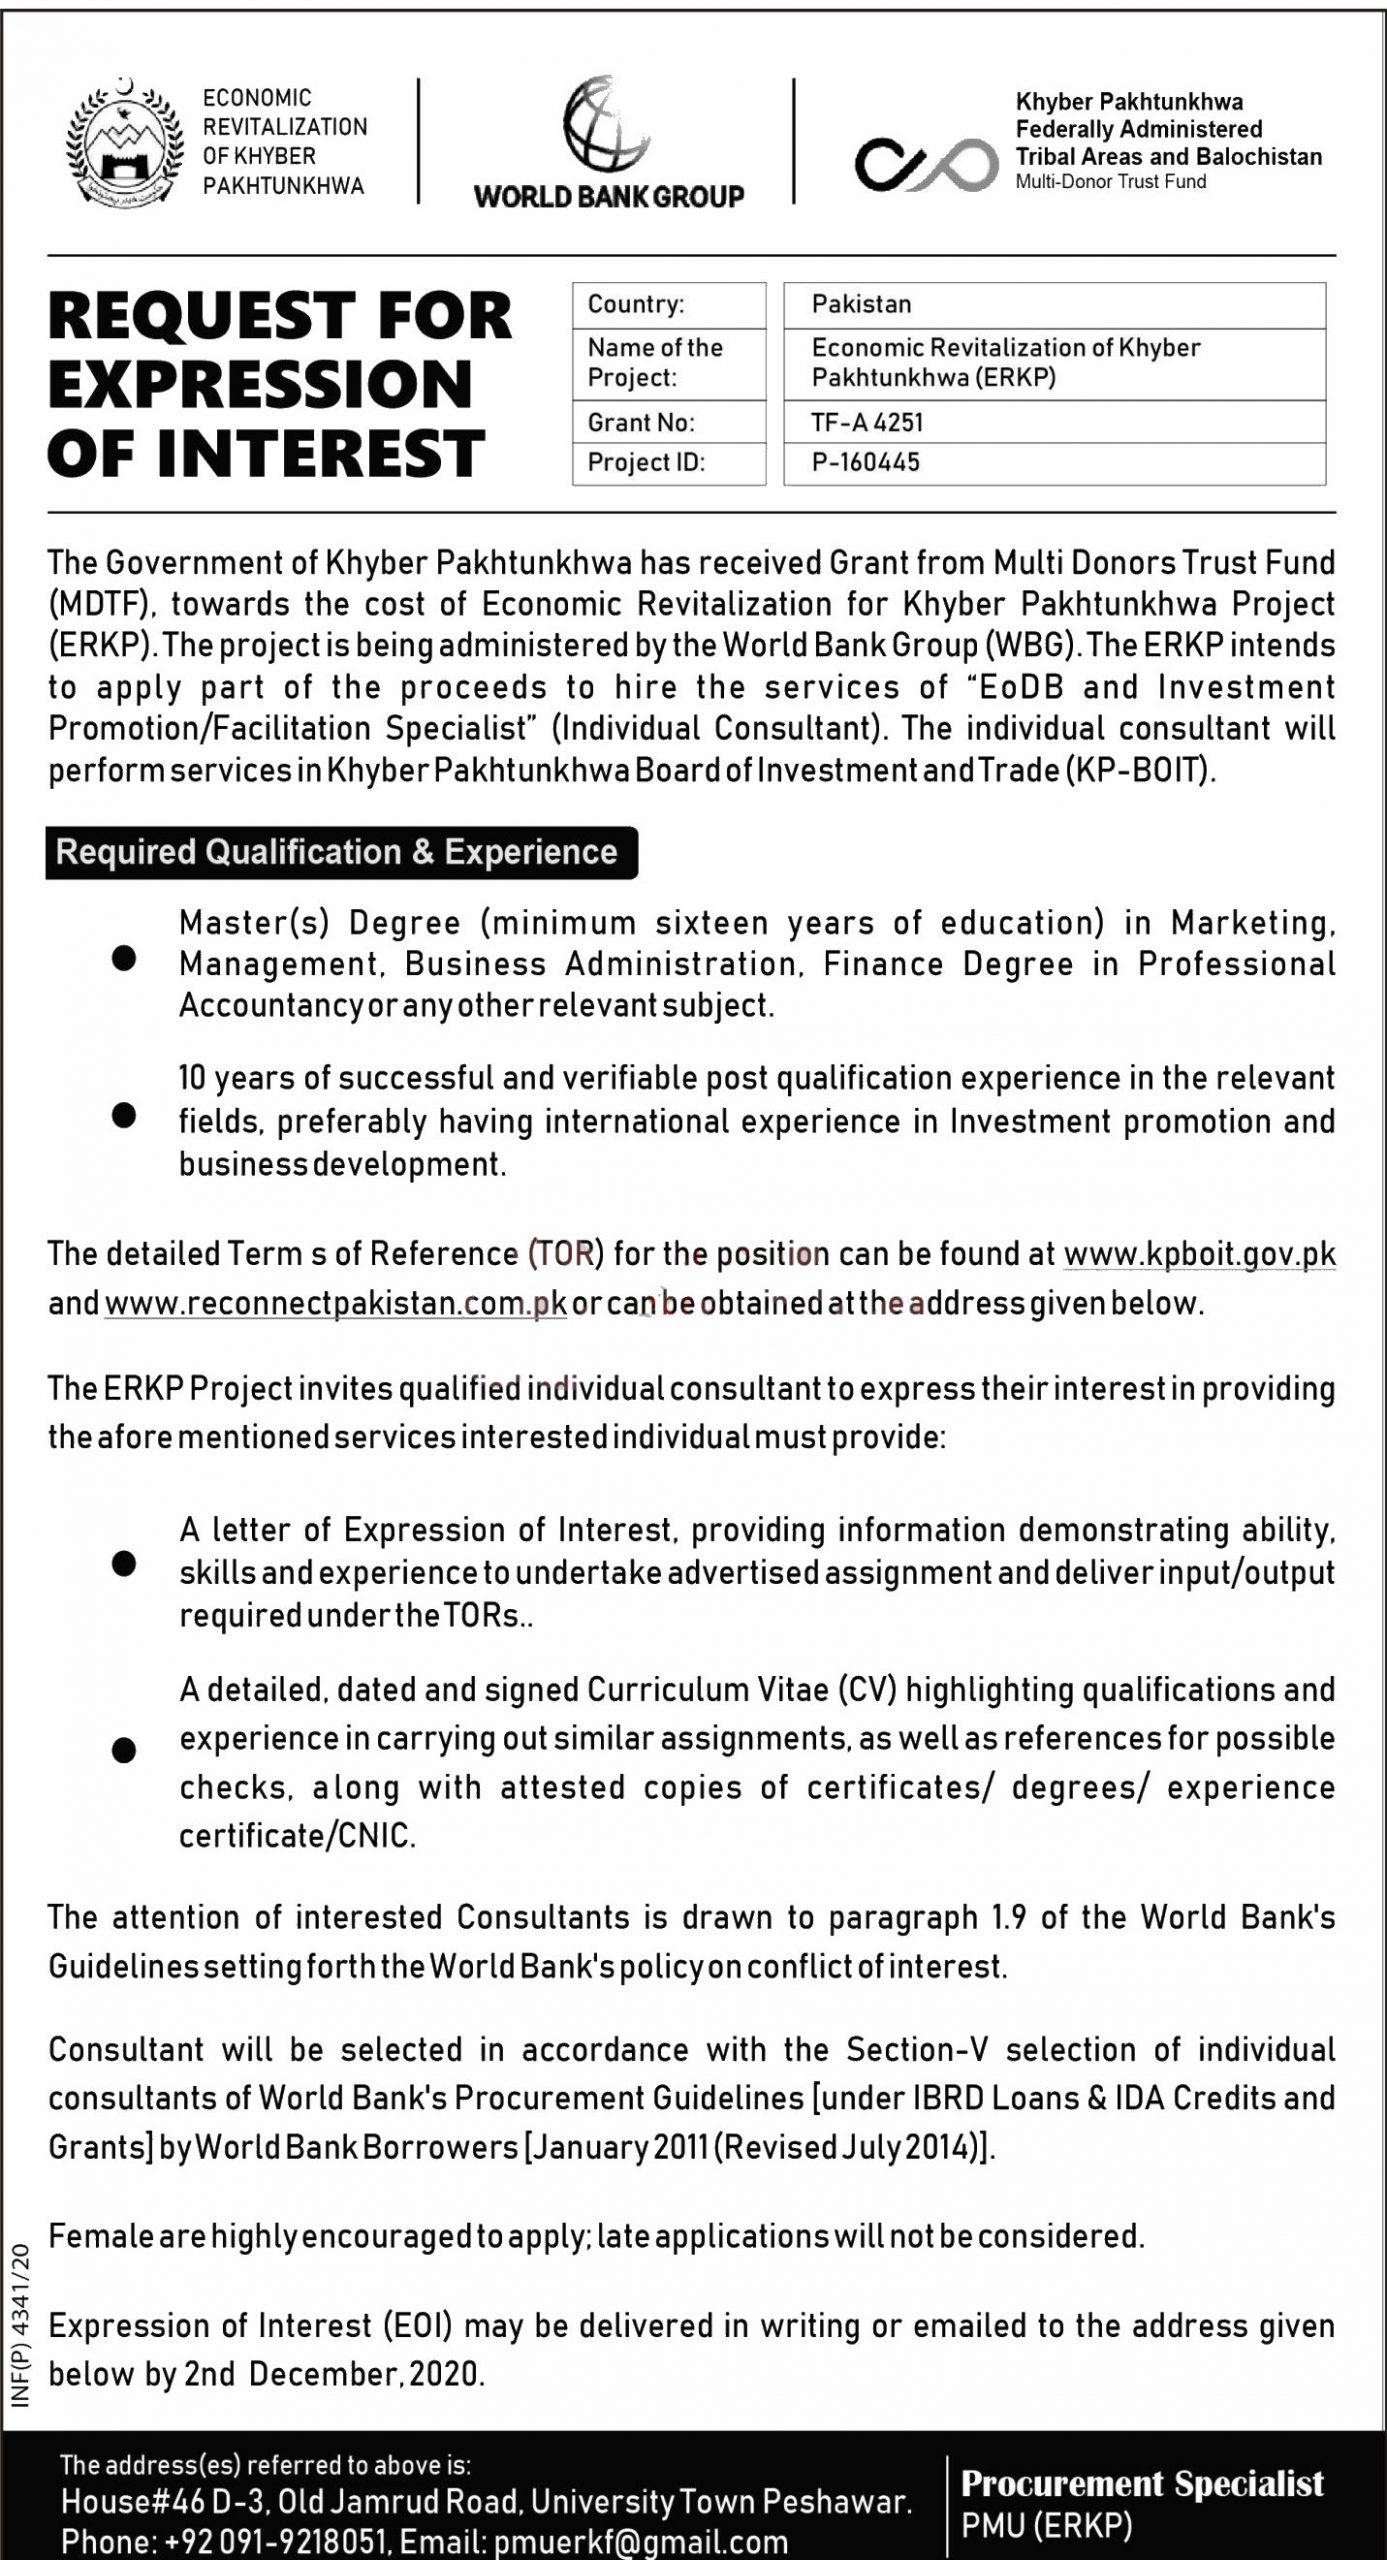 Jobs in Economic Revitalization of Khyber Pakhtunkhwa ERKP 17 November, 2020